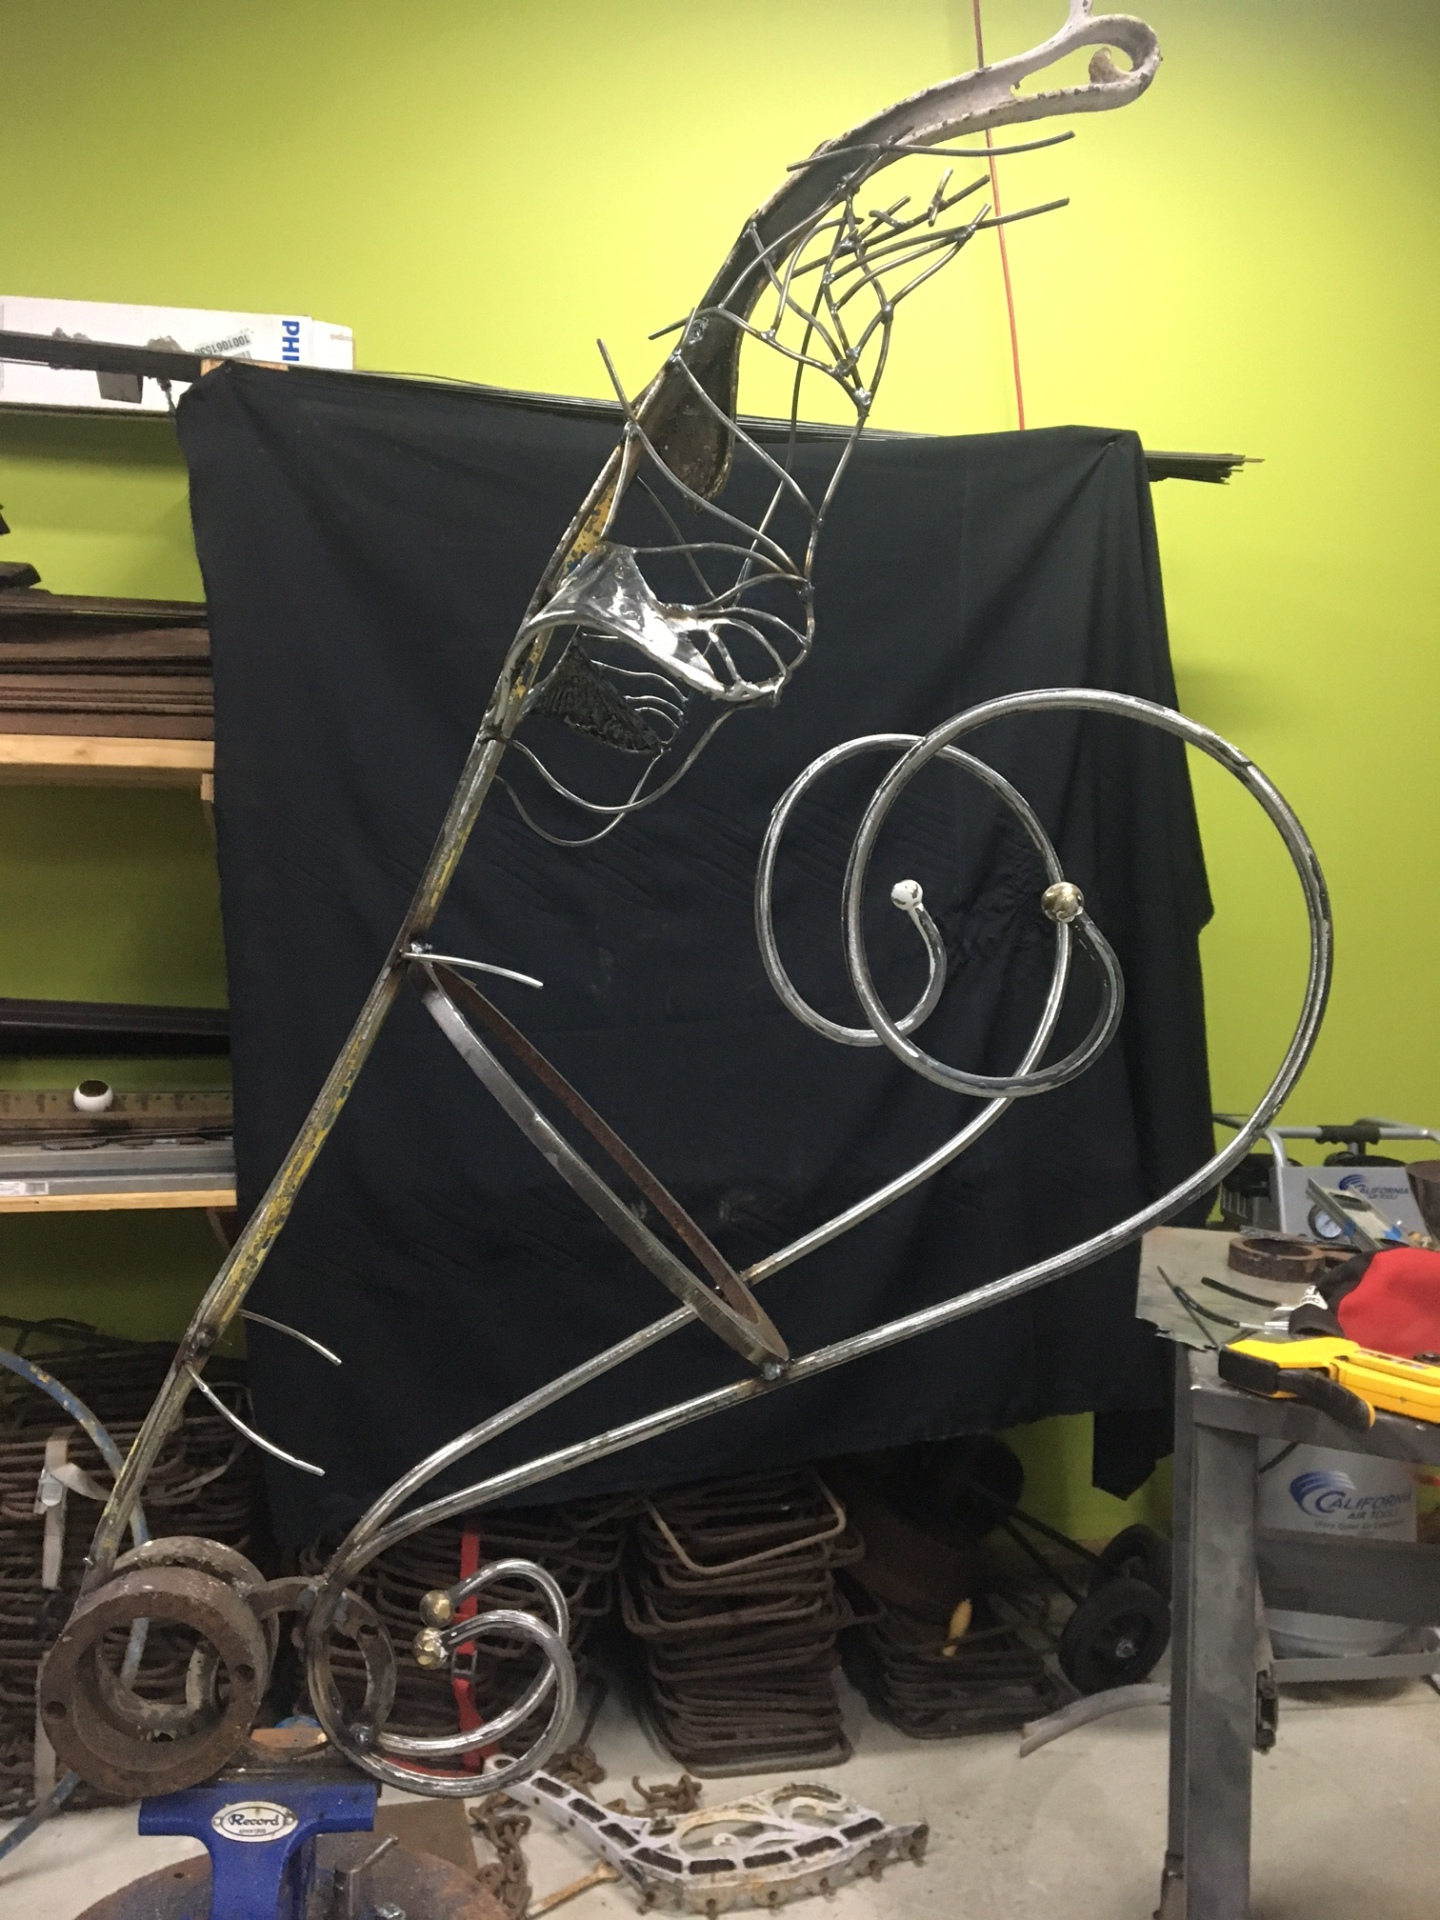 Mig welding horse head sculpture process by Rusty Croft